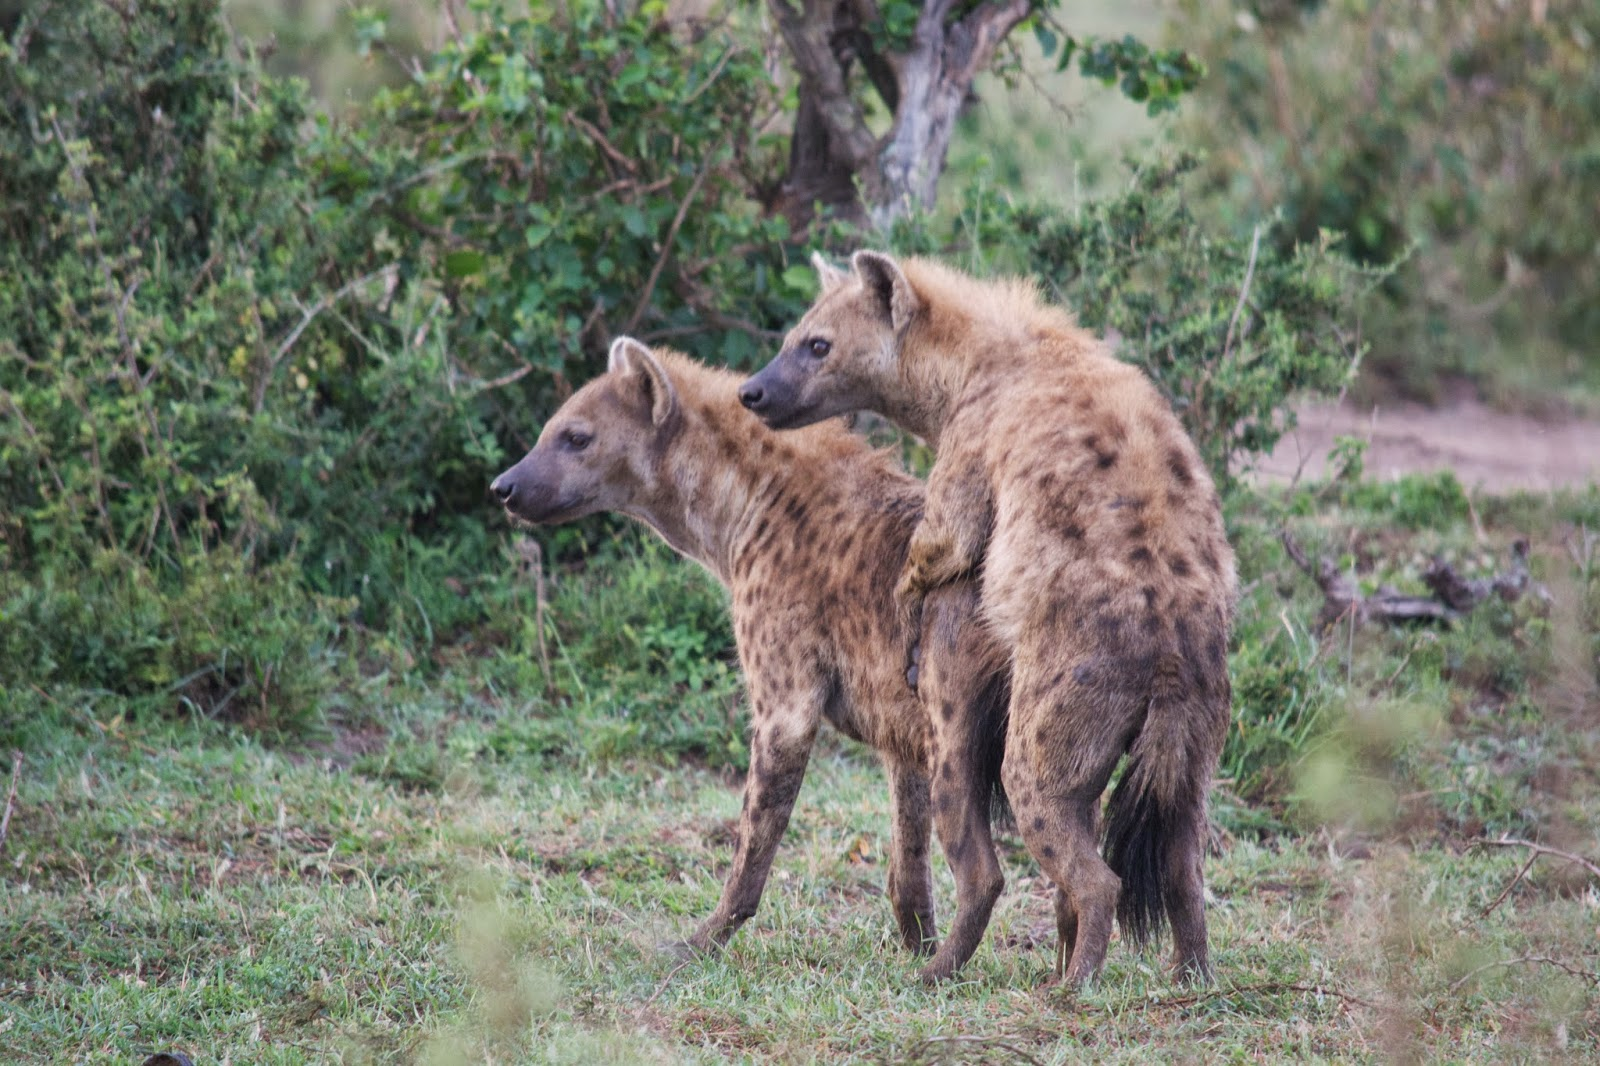 Male hyena approaches - mikedexter.commikedexter.com